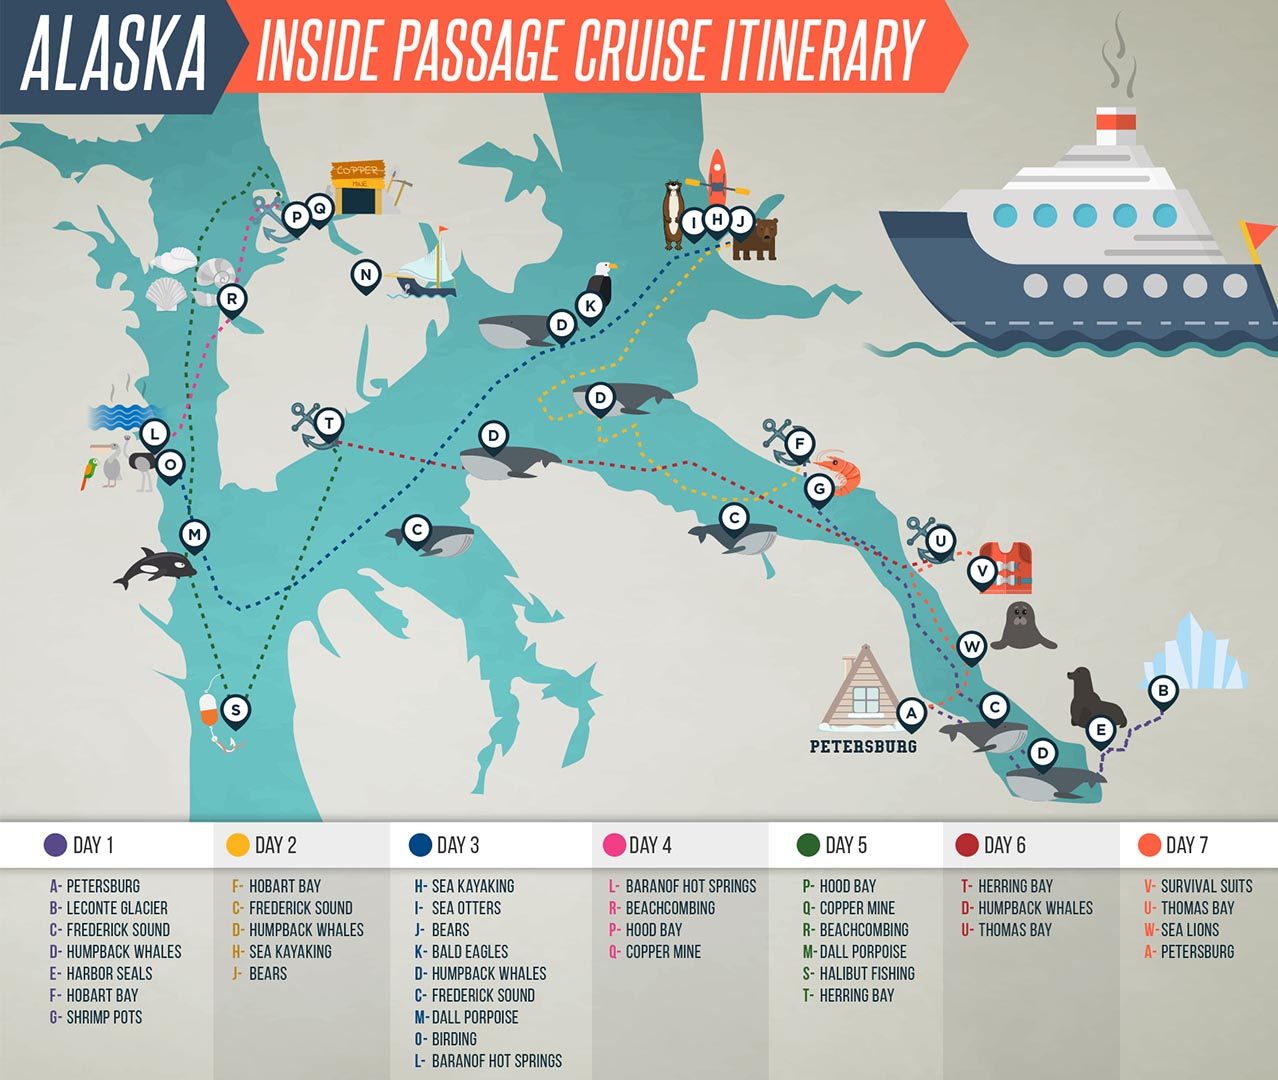 Alaska Inside Passage Cruise Itinerary